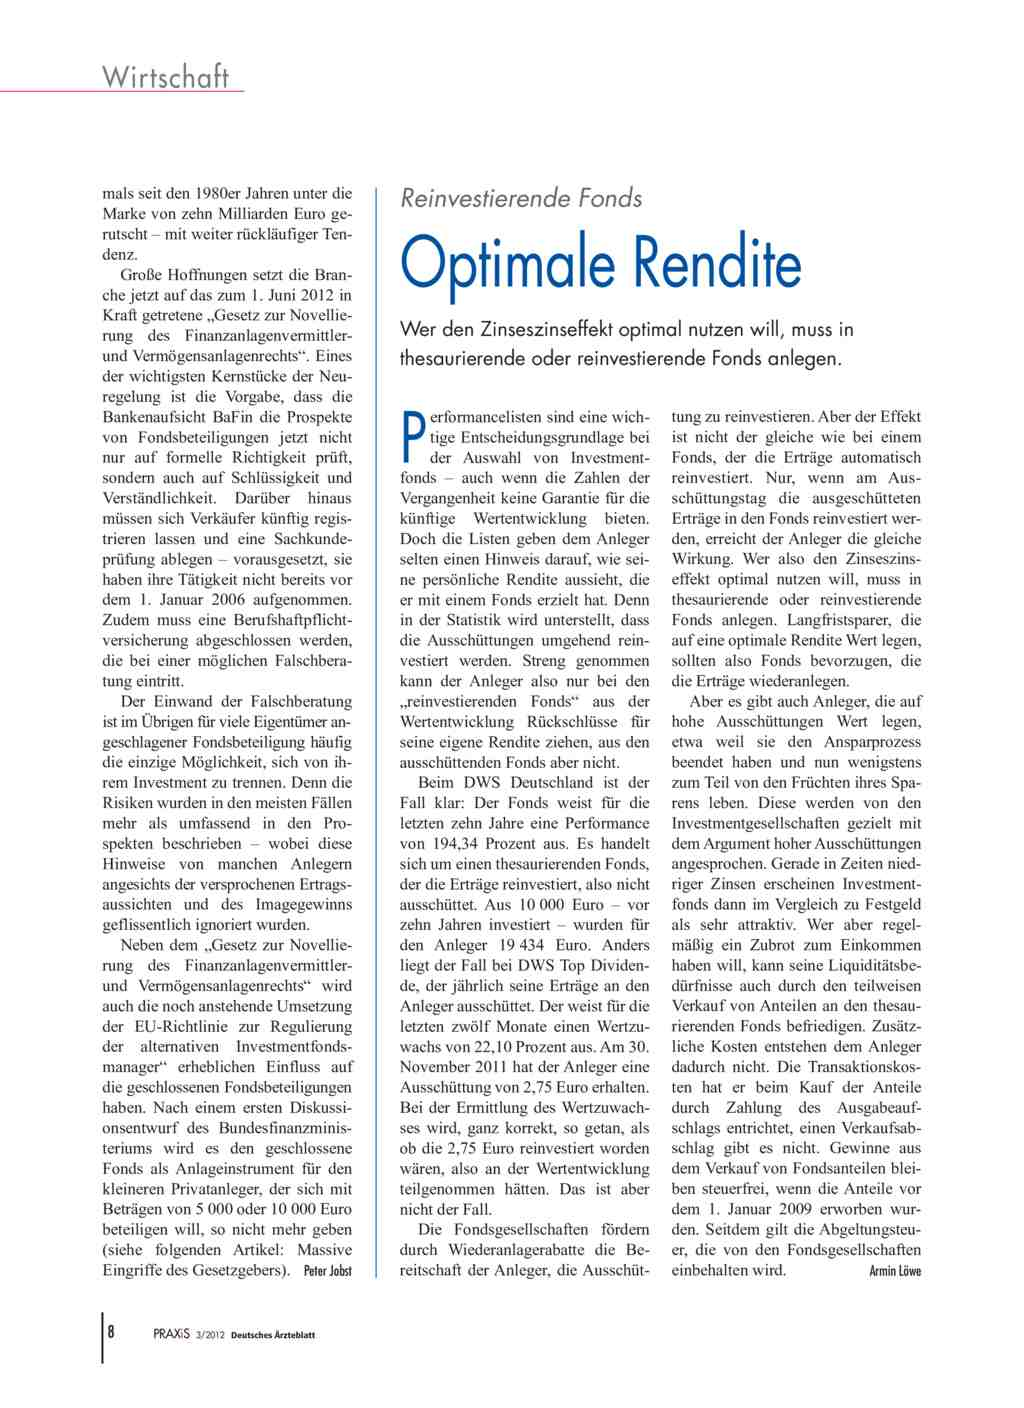 Reinvestierende Fonds: Optimale Rendite